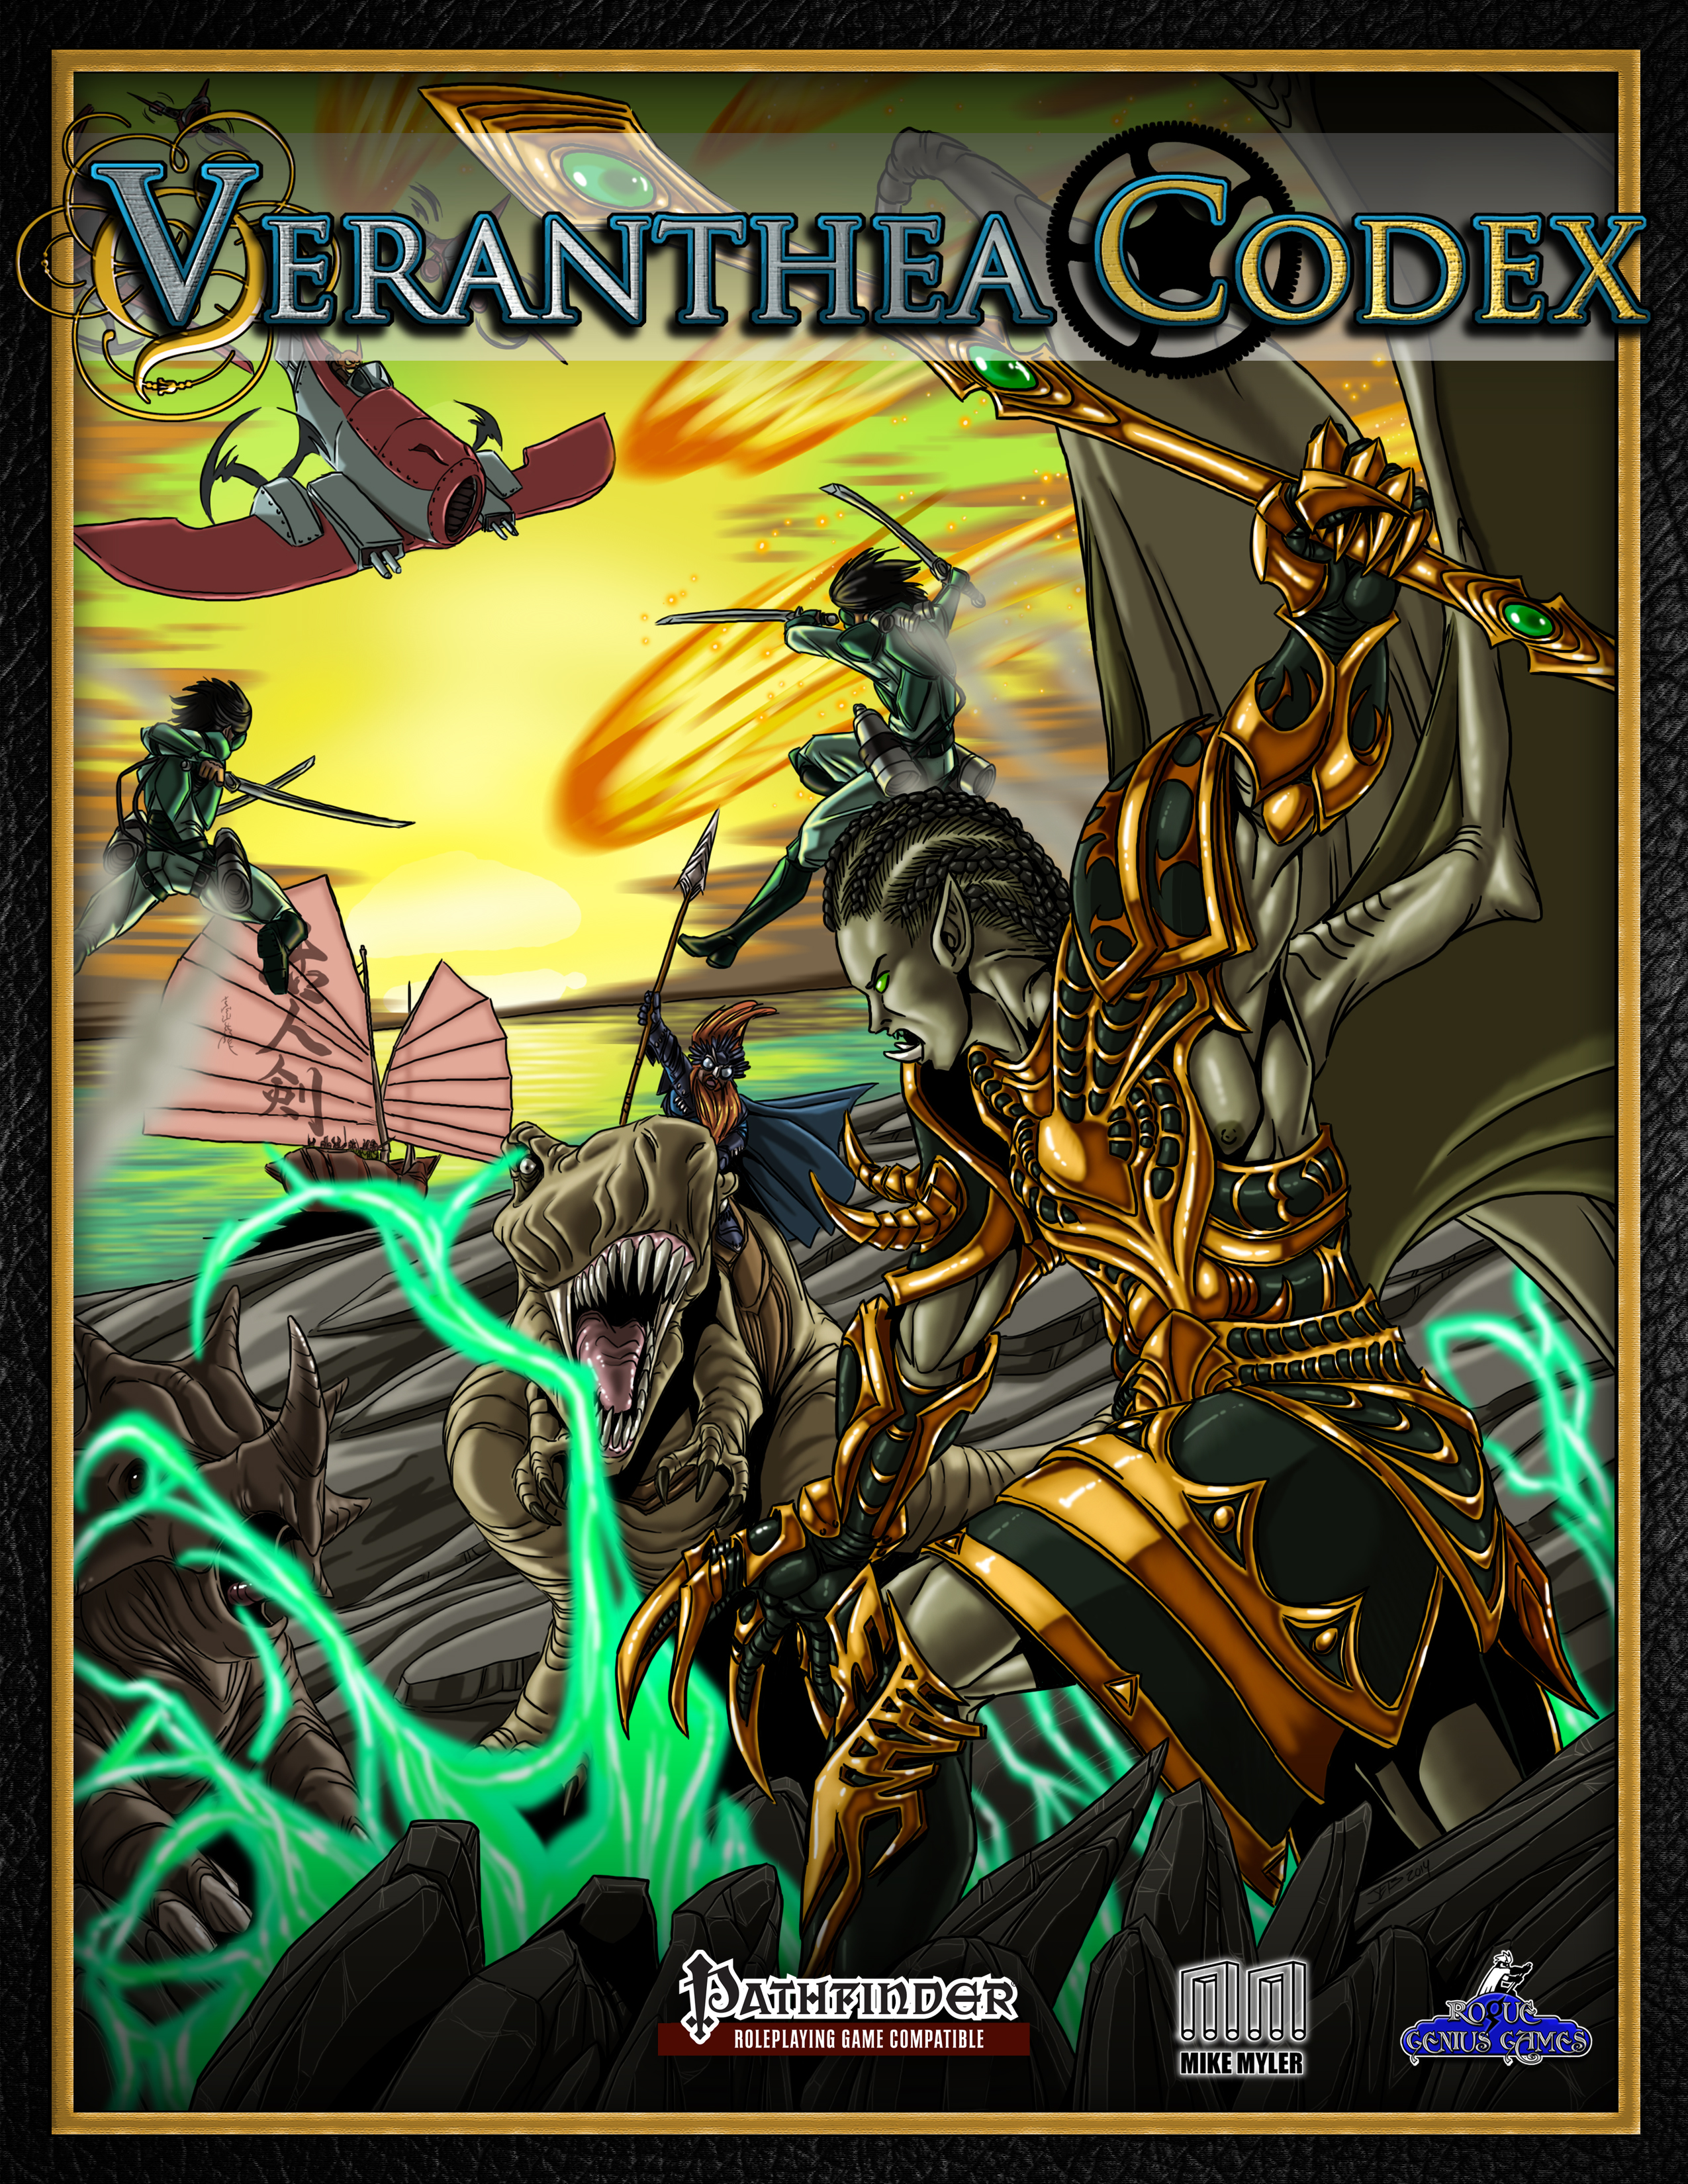 VC_Main_Cover_large